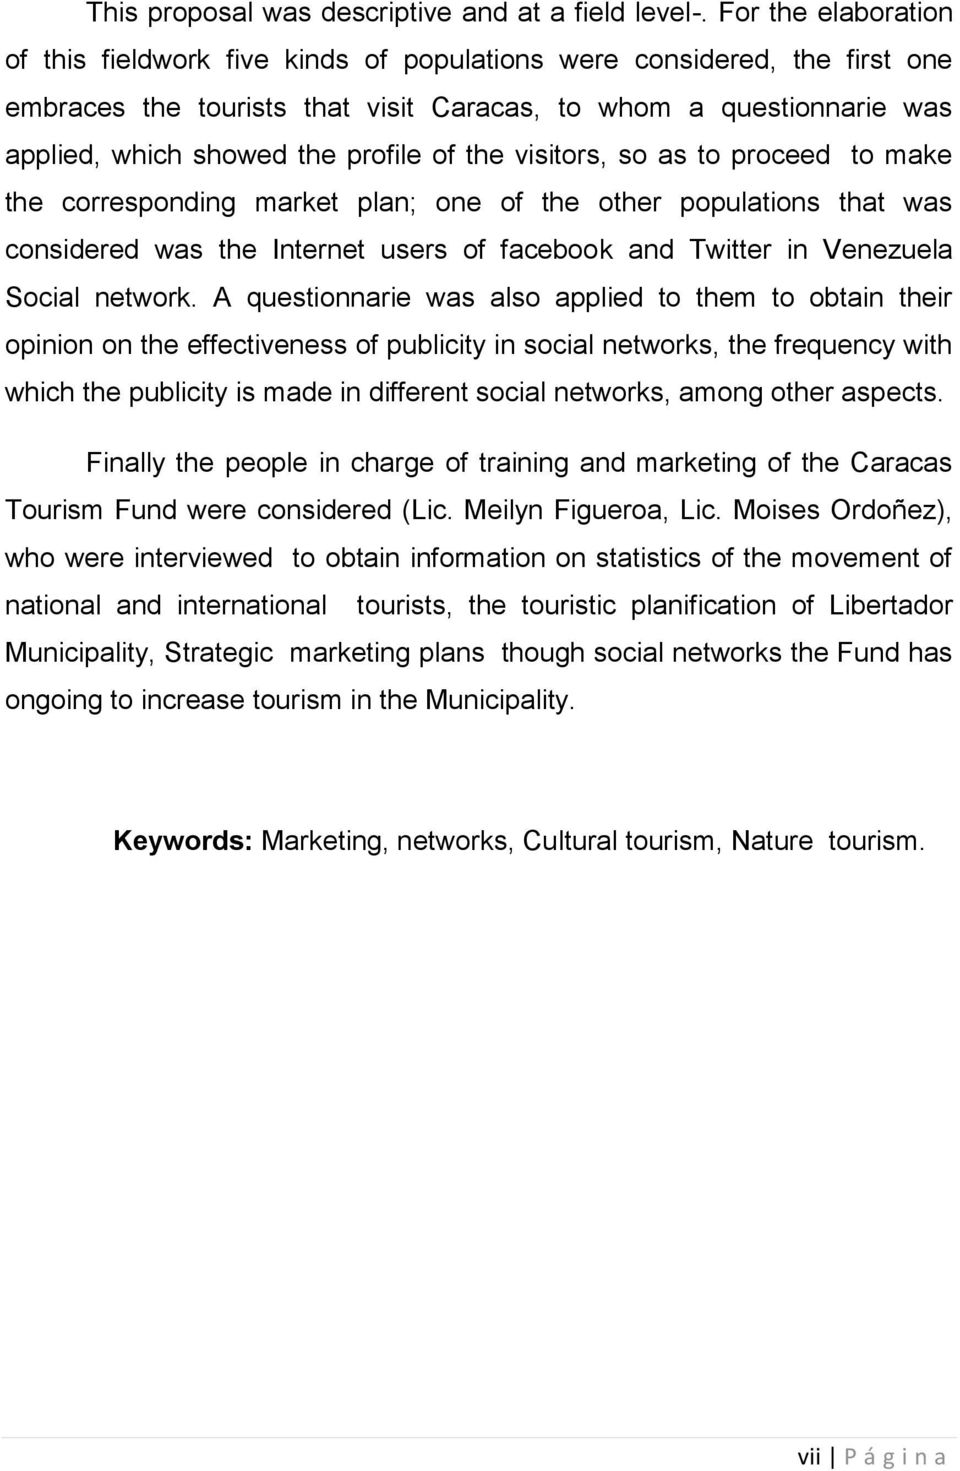 of the visitors, so as to proceed to make the corresponding market plan; one of the other populations that was considered was the Internet users of facebook and Twitter in Venezuela Social network.